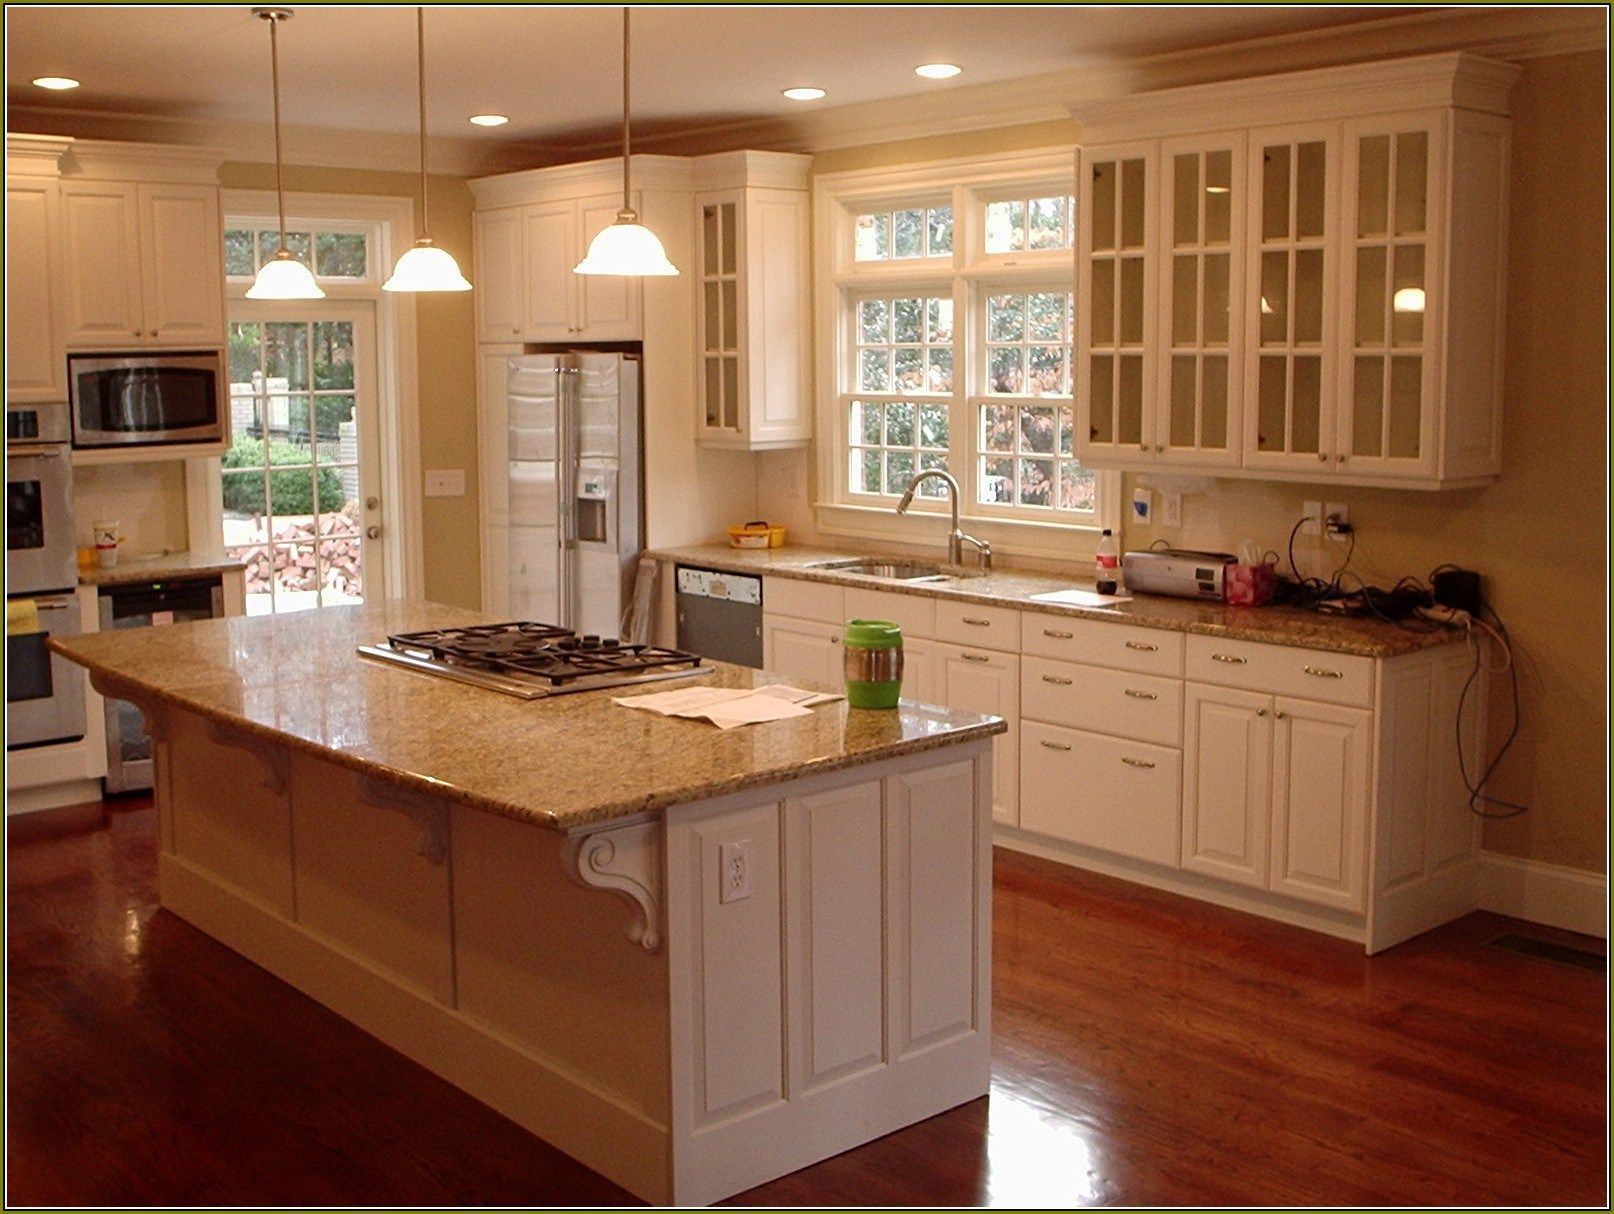 Home Depot Kitchen Cabinets Home Design Ideas Refacing Refinishing Endearing Home Depot Kitchen Doors Design Ideas